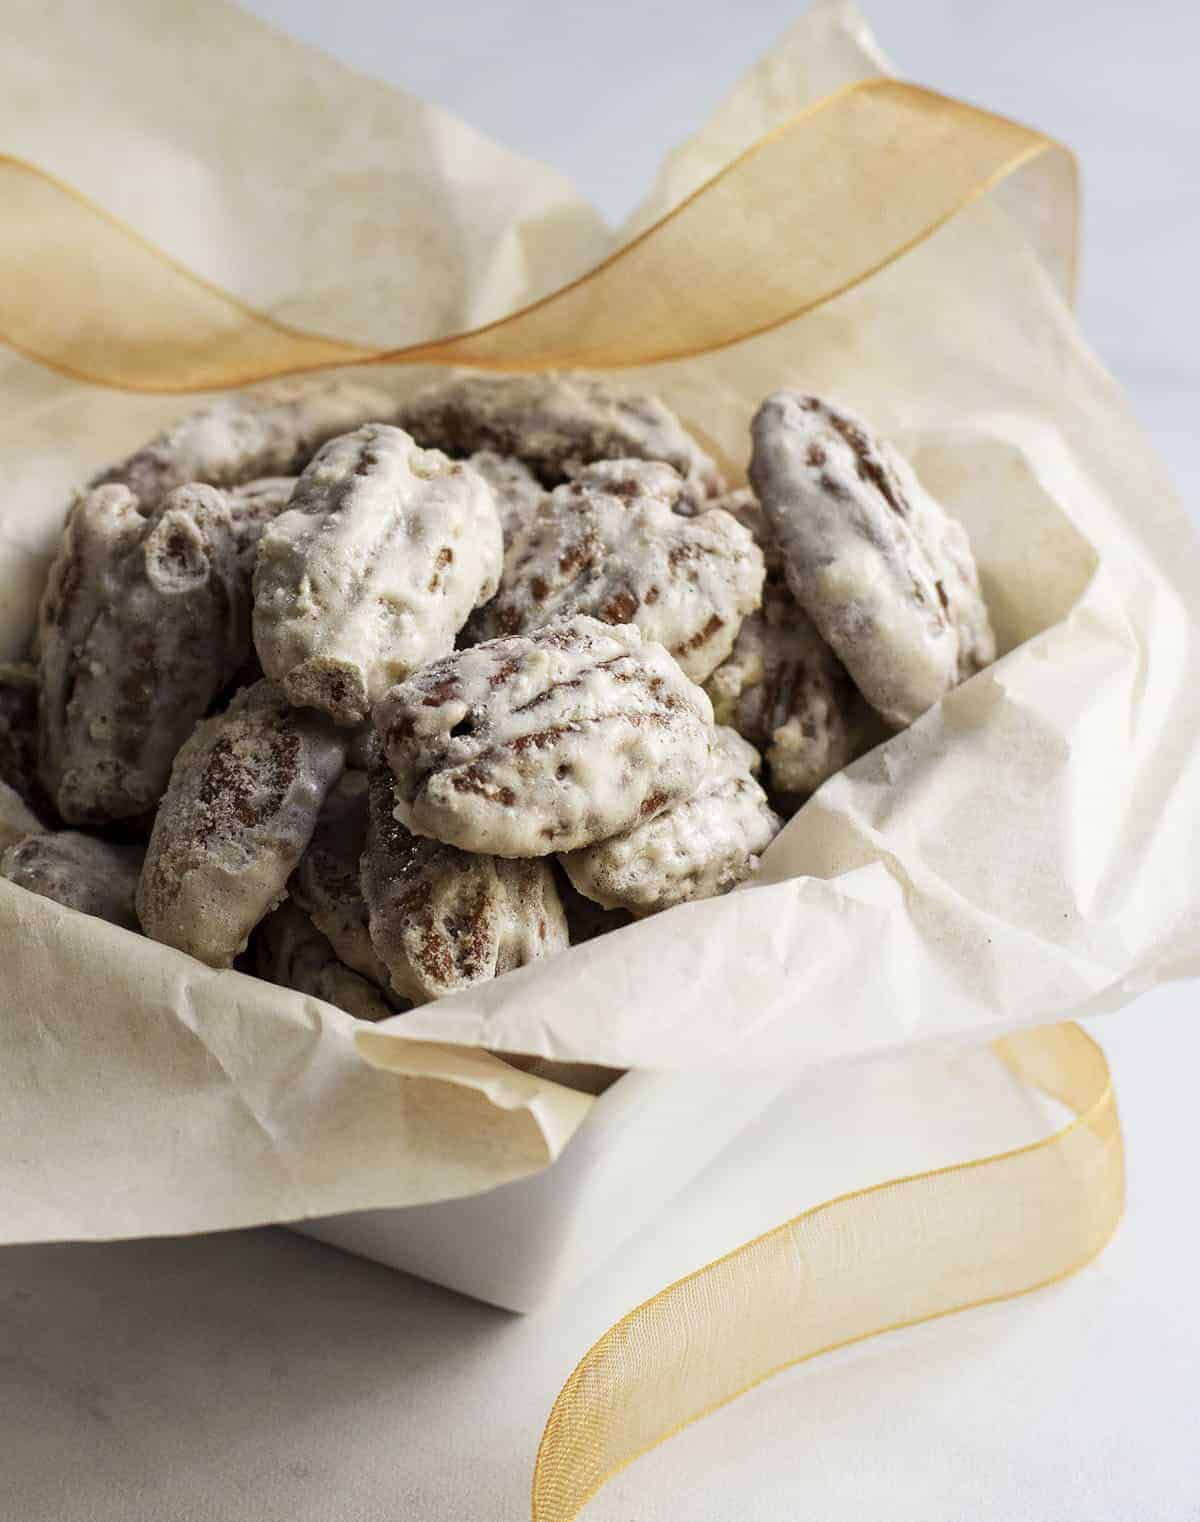 Sugared Pecans in a white square bowl with tissue and ribbon